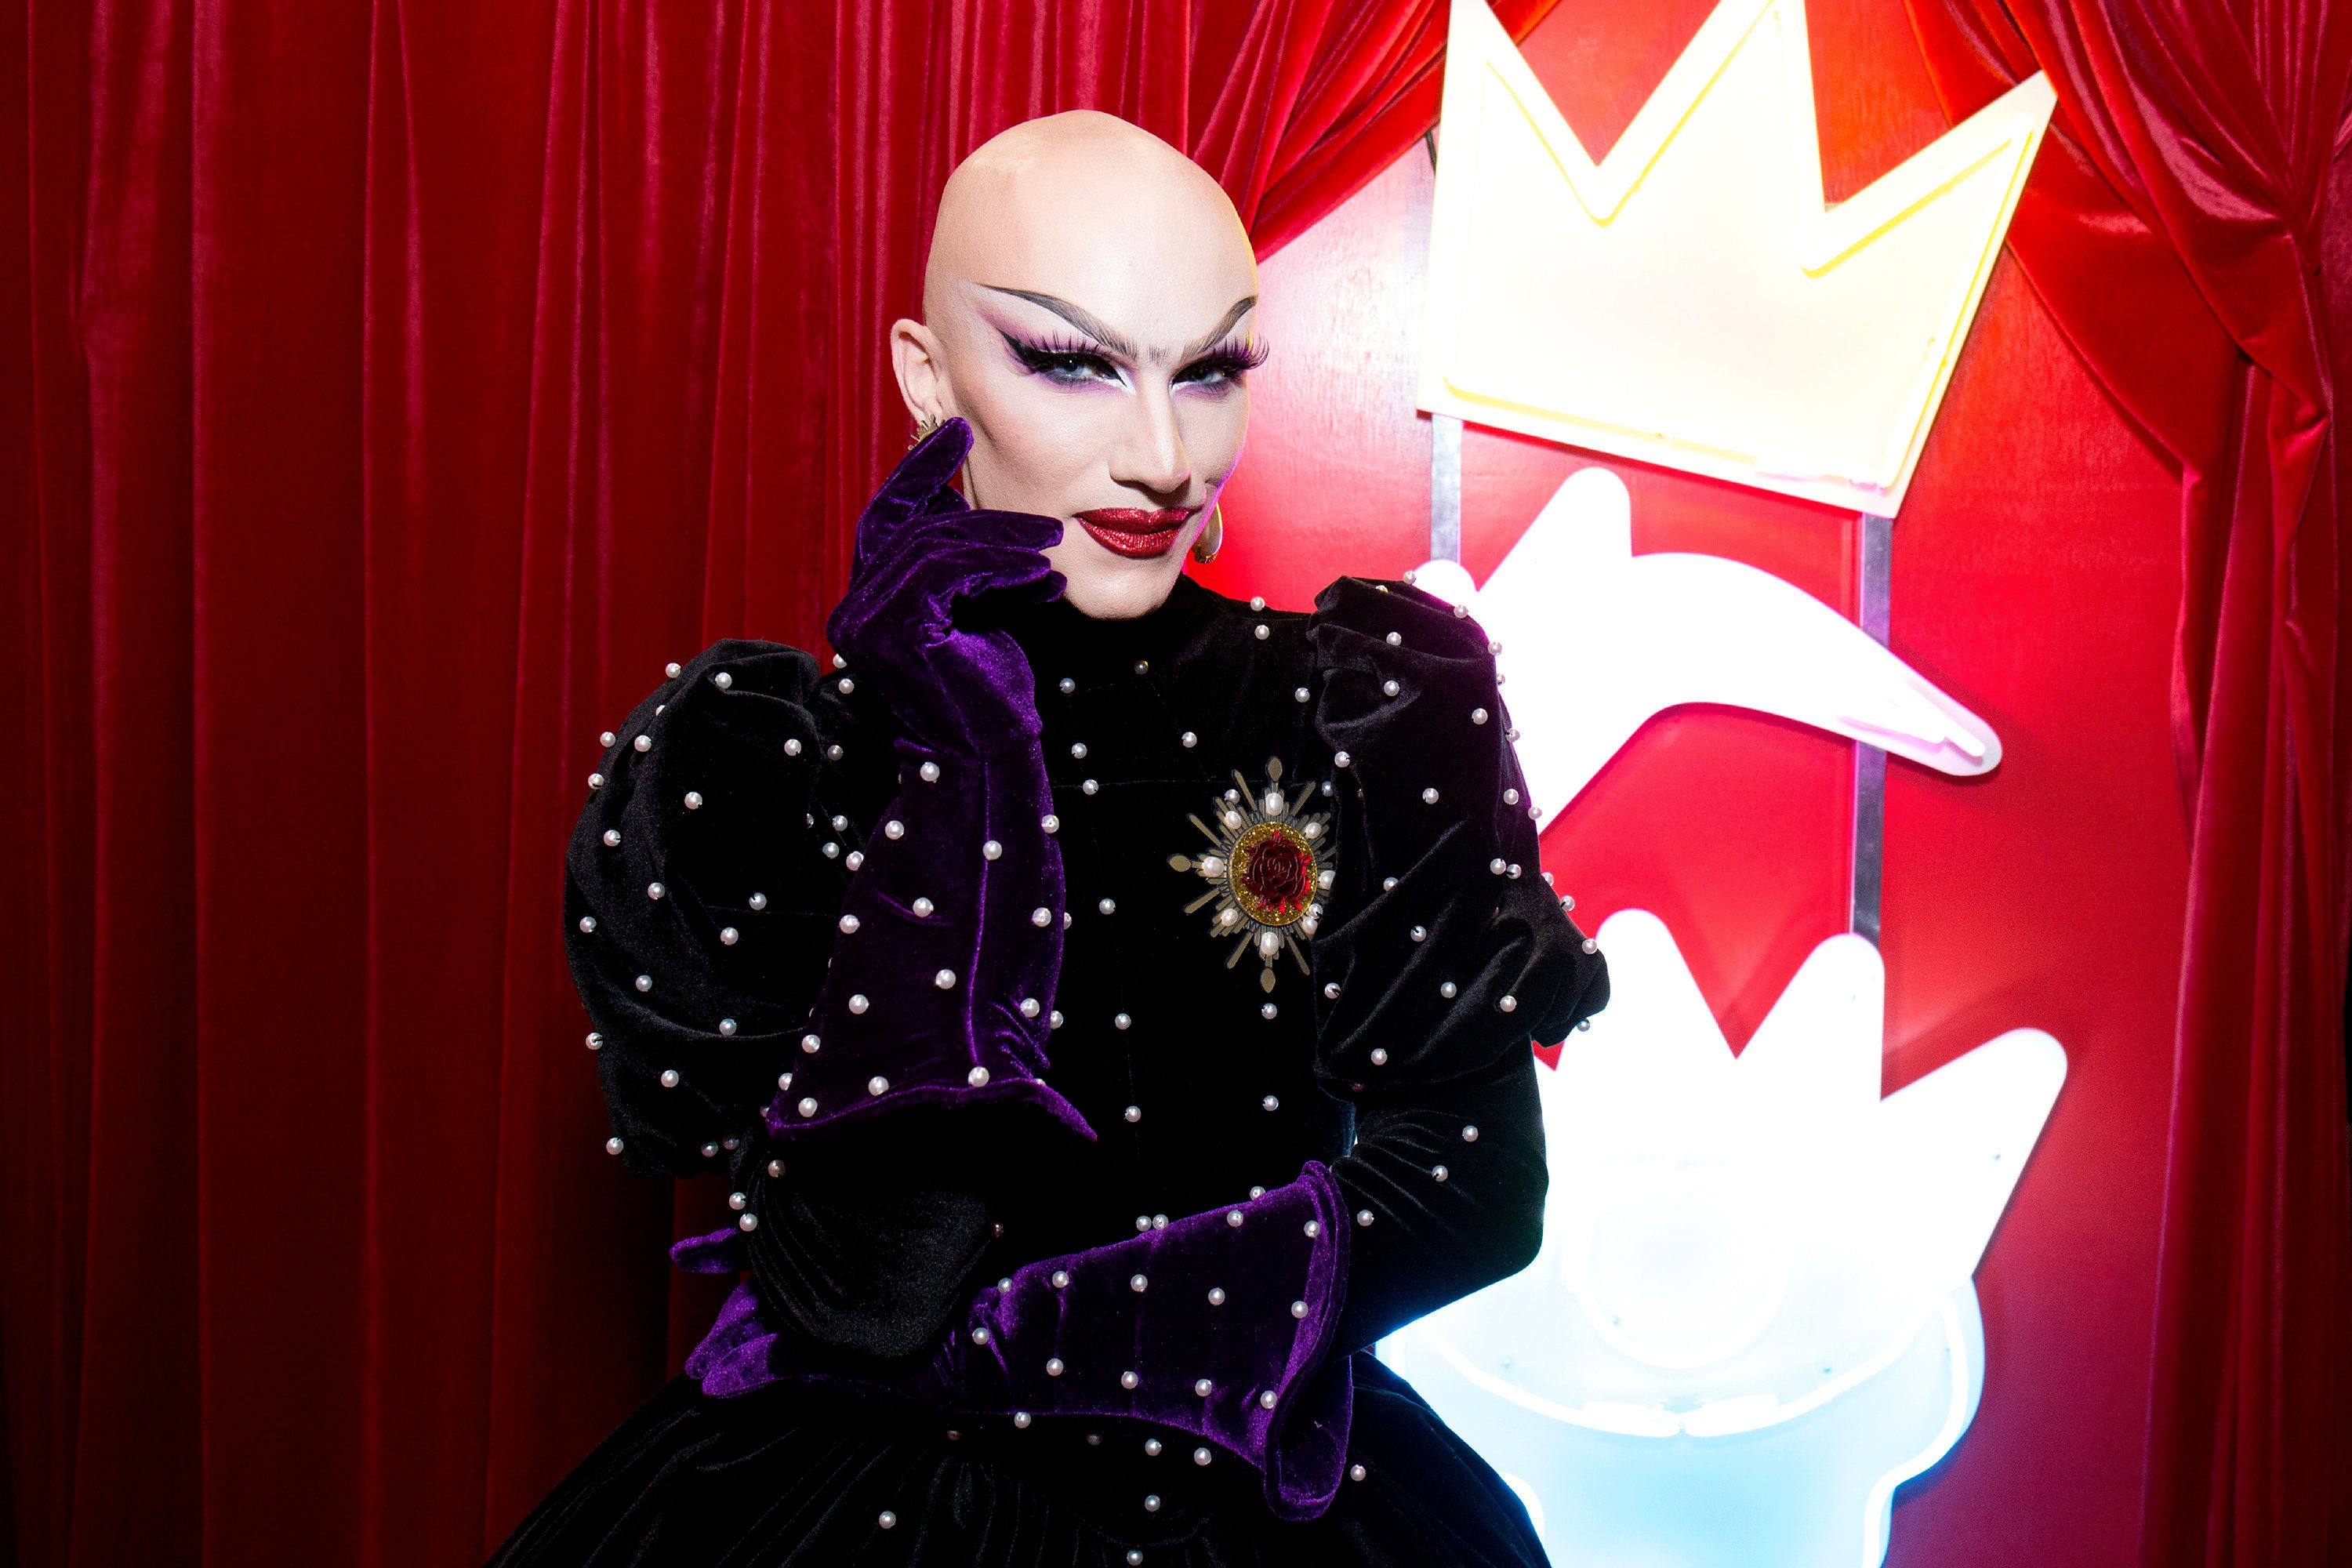 NEW YORK, NY - SEPTEMBER 09:  Sasha Velour attends RuPaul's DragCon NYC 2017 at The Jacob K. Javits Convention Center on September 9, 2017 in New York City.  (Photo by Santiago Felipe/Getty Images)